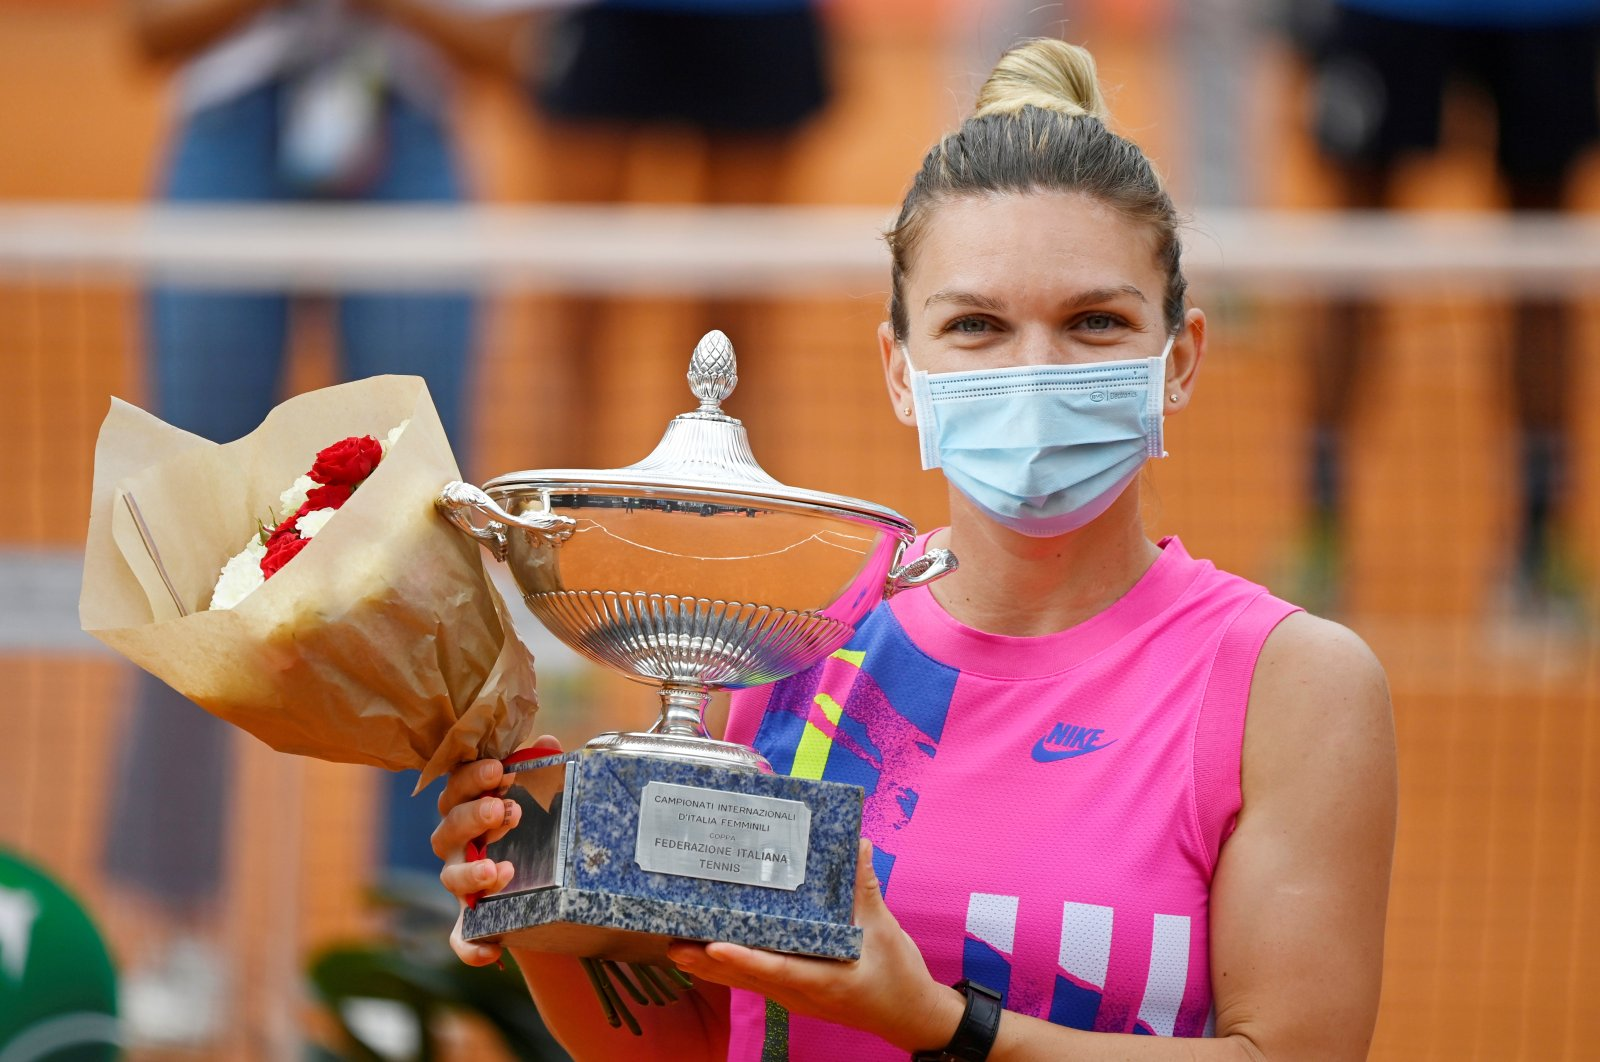 Simona Halep holds Italian Open trophy after winning the tournament in Rome, Italy, Sept. 21, 2020. (Reuters Photo)